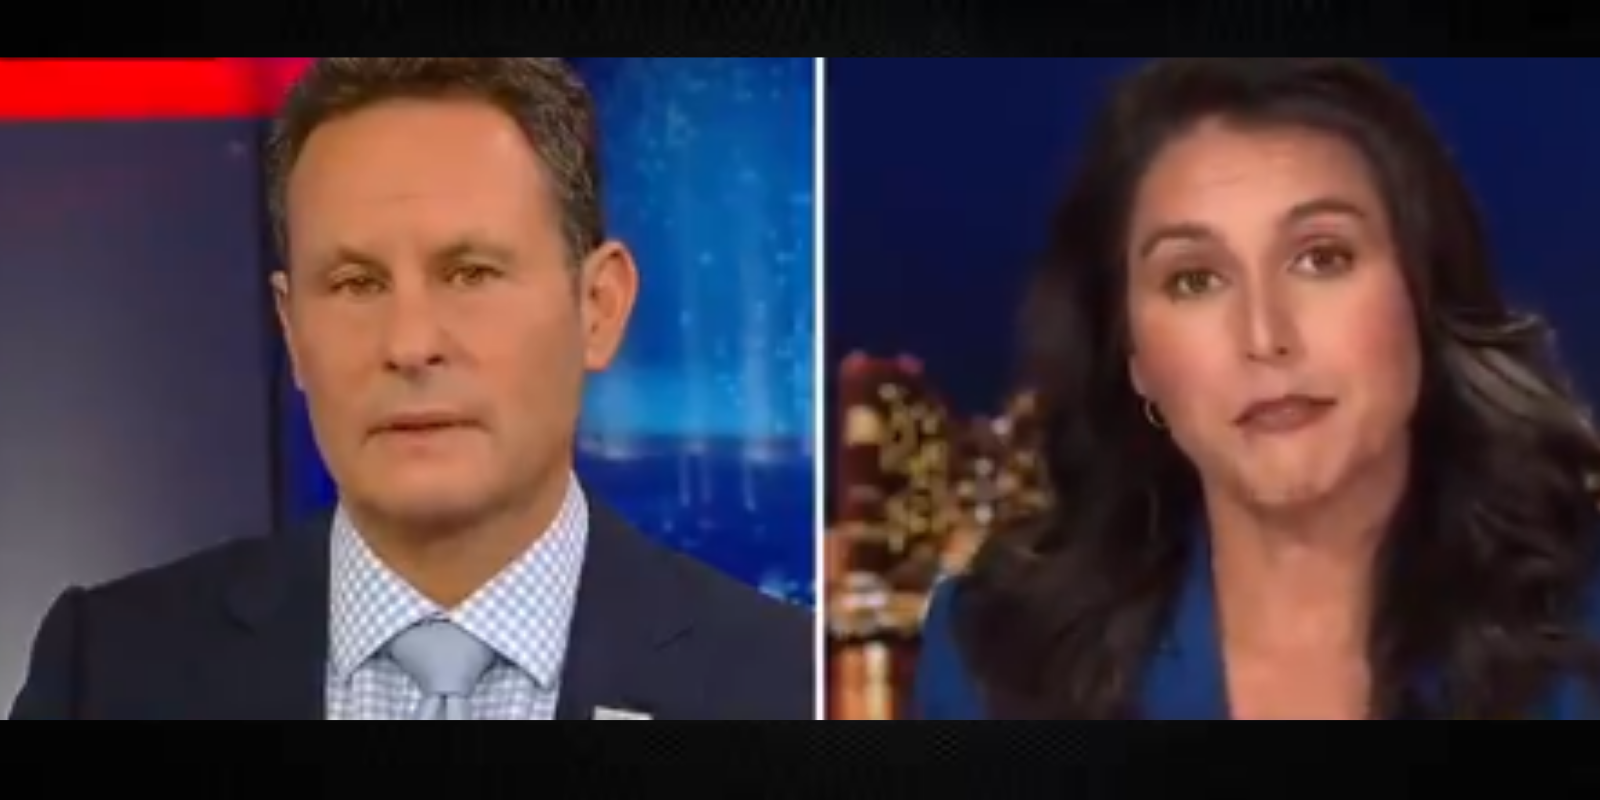 WATCH: Tulsi Gabbard asks Biden to denounce the targeting of all Trump supporters